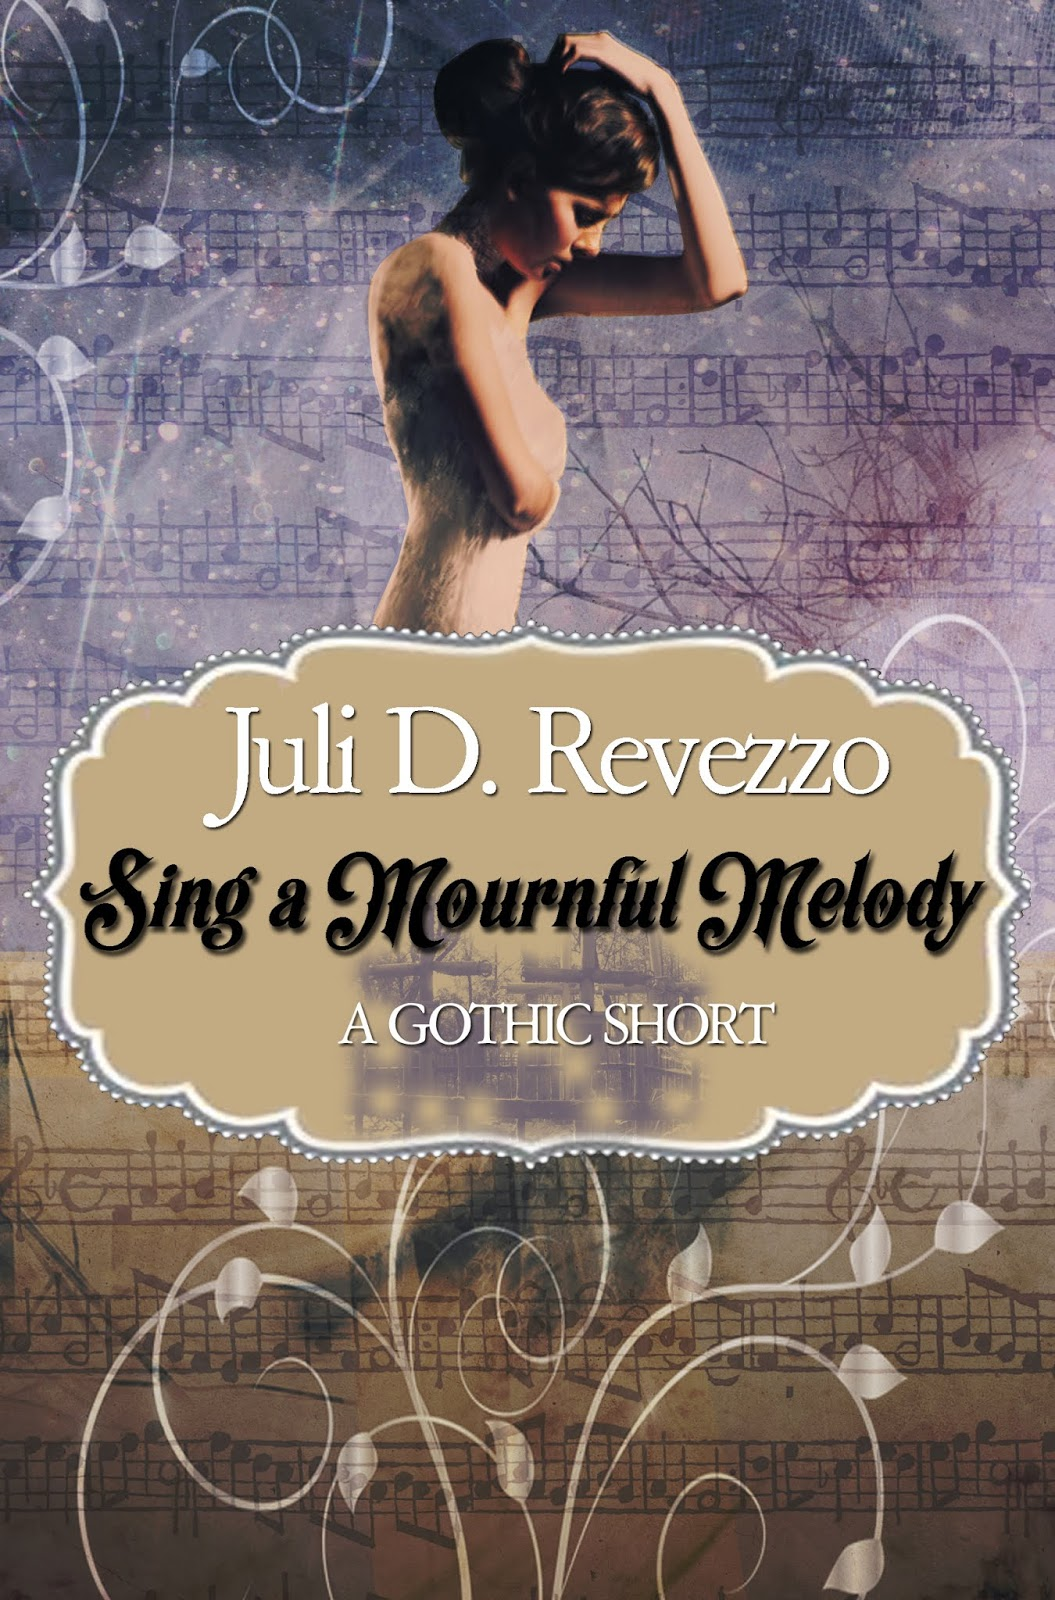 Sing a Mournful Melody by Juli D. Revezzo, Gothic fiction, Vampire fiction, short story